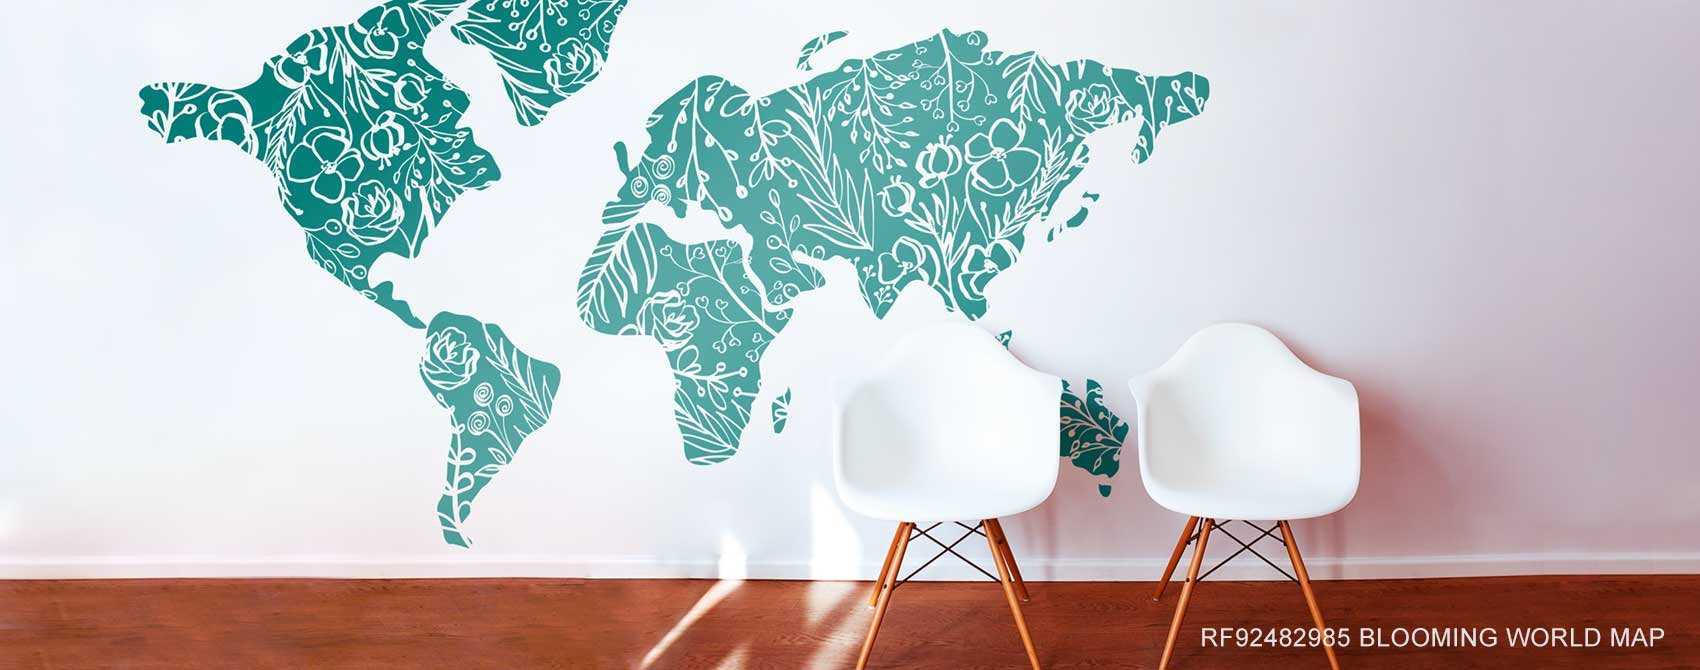 Blooming Flowers World Map Mural